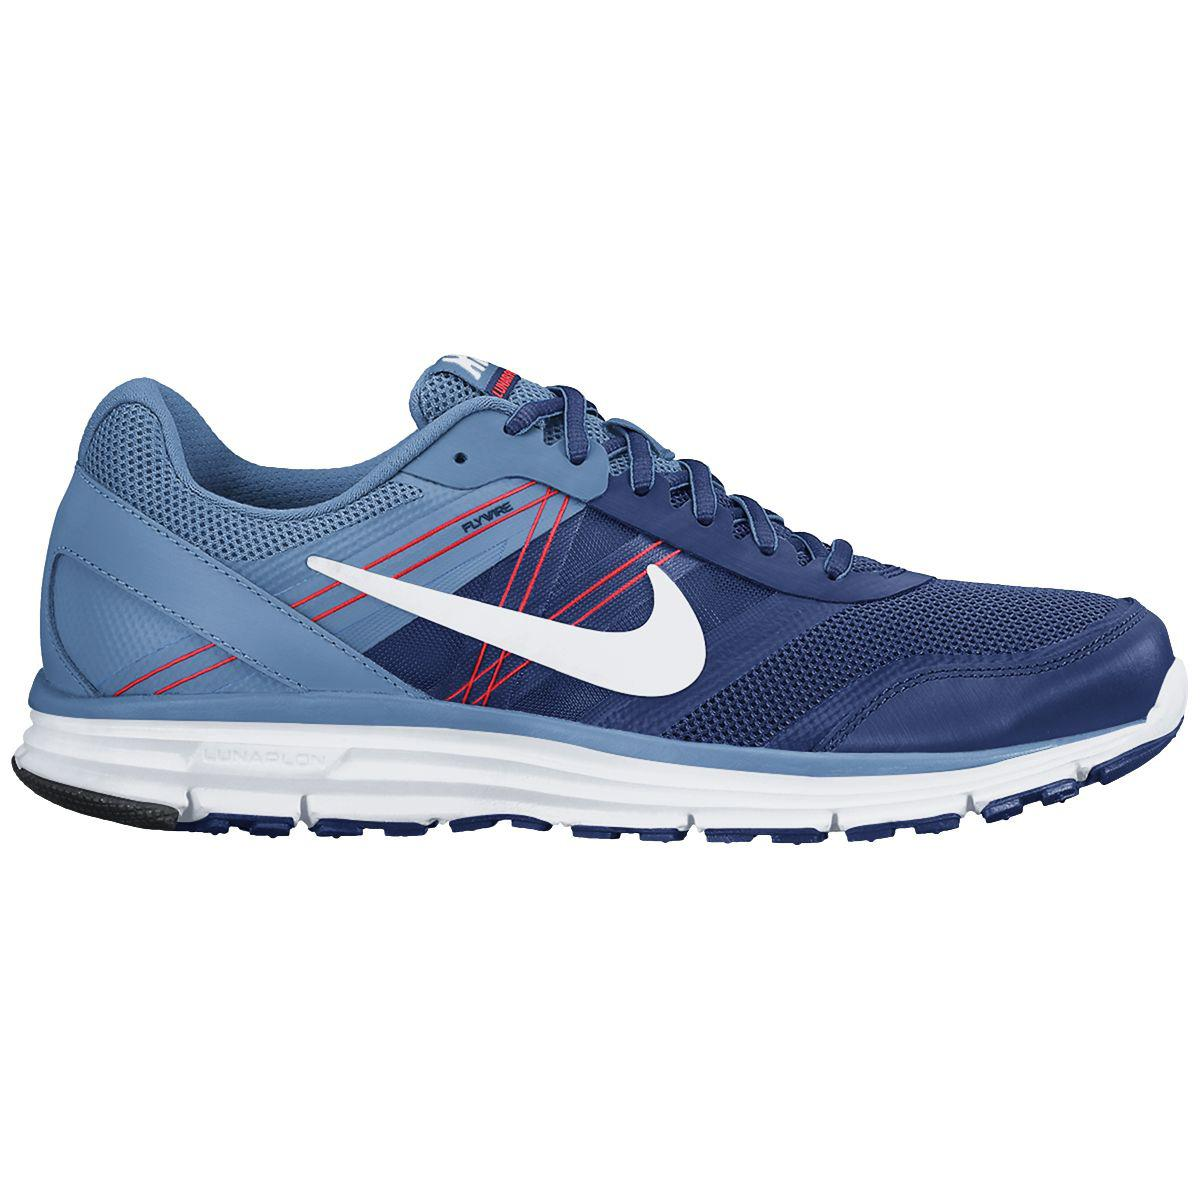 uk availability 622c7 4e399 Nike Mens Lunar Forever 4 Running Shoes - Deep Royal BlueWhite -  Tennisnuts.com